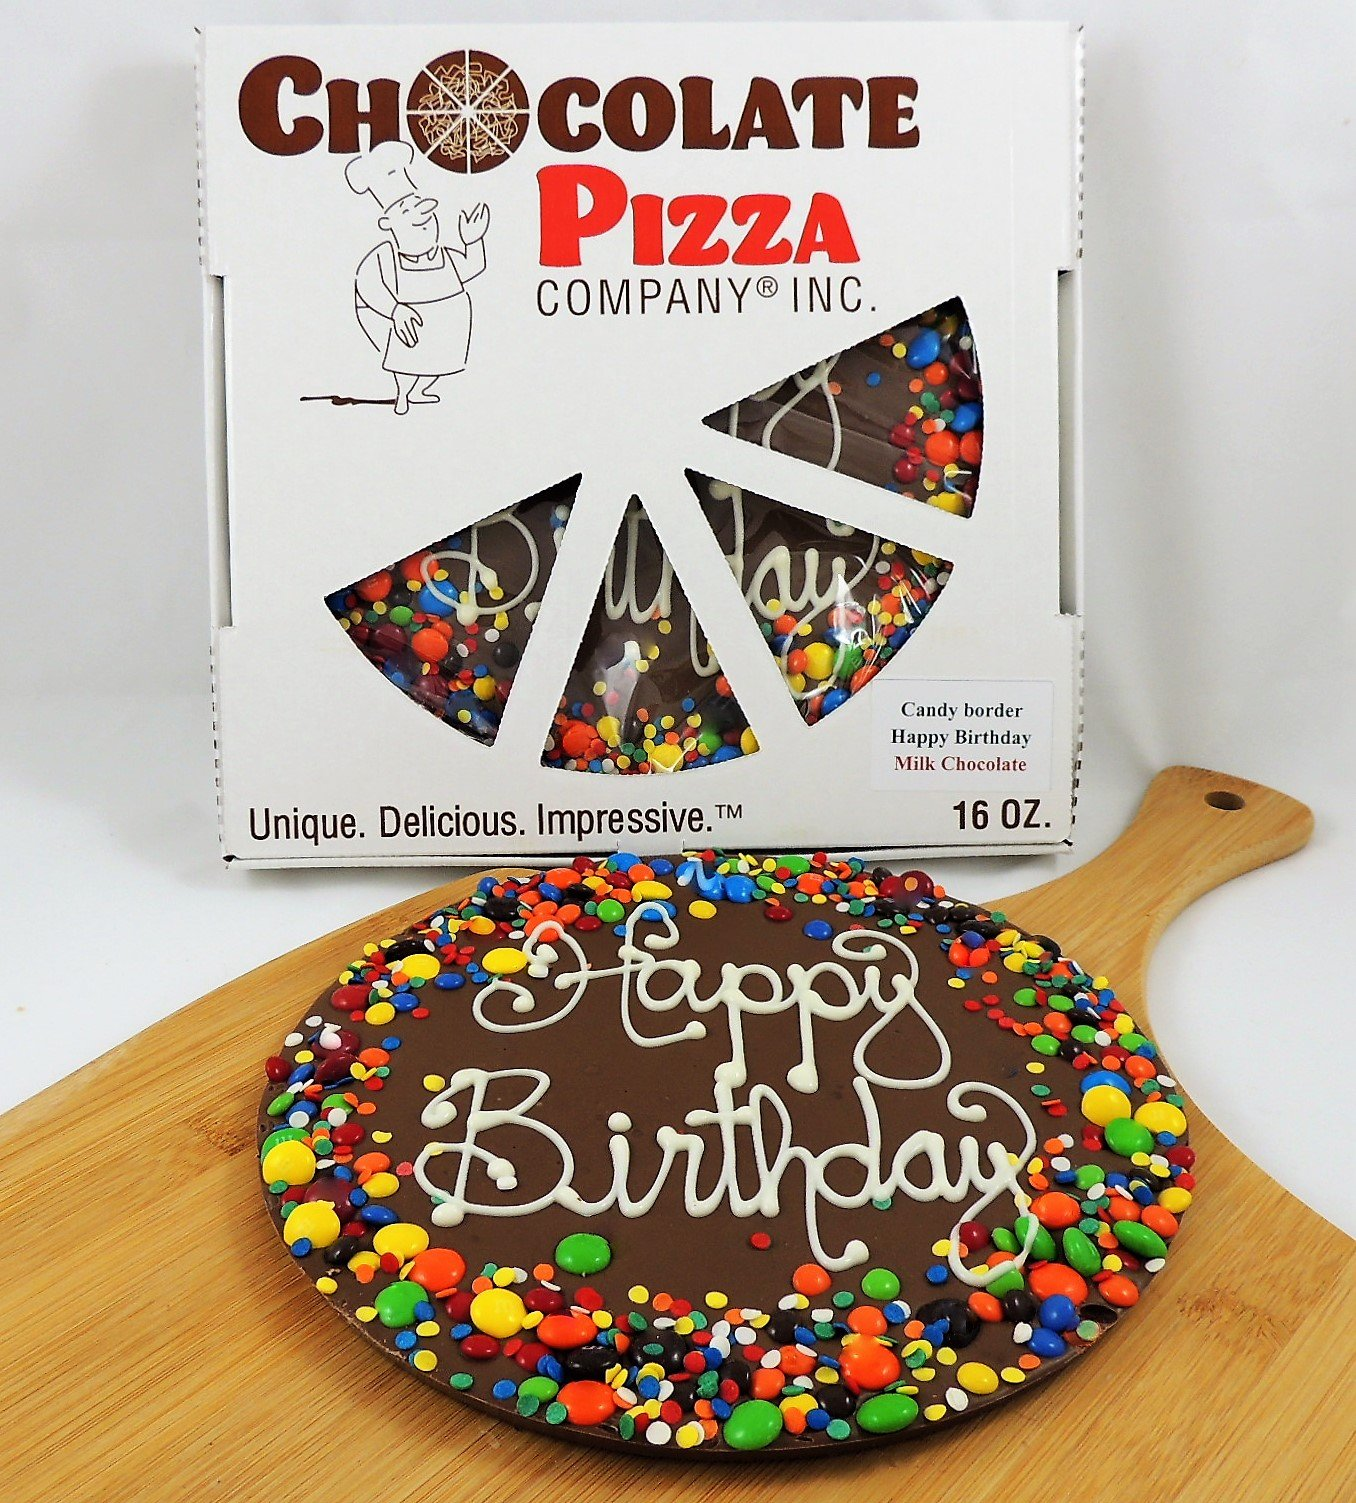 Chocolate Pizza®, Happy Birthday, 14 Ounce, 10 Inch, Hand-Decorated, Made in USA by Chocolate Pizza Company